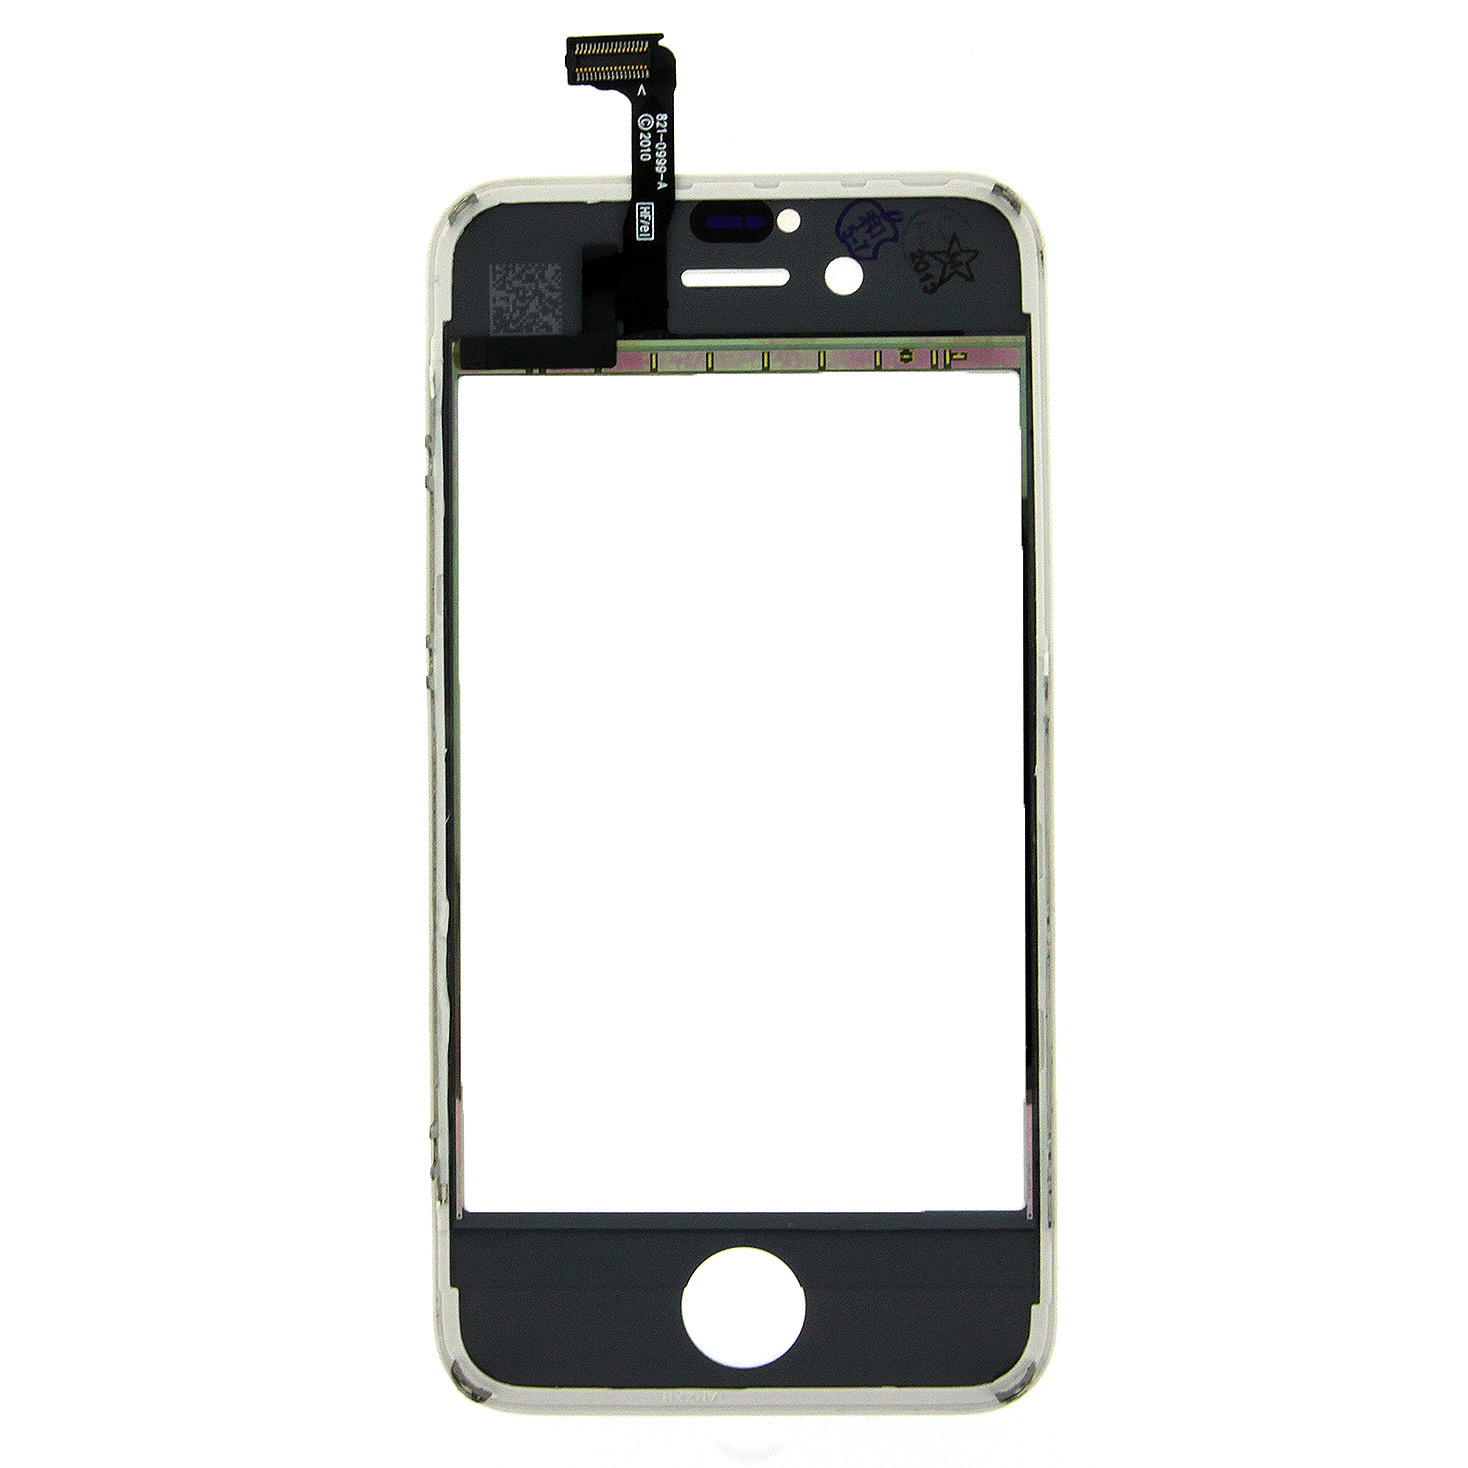 How To Replace Iphone S Screen And Digitizer